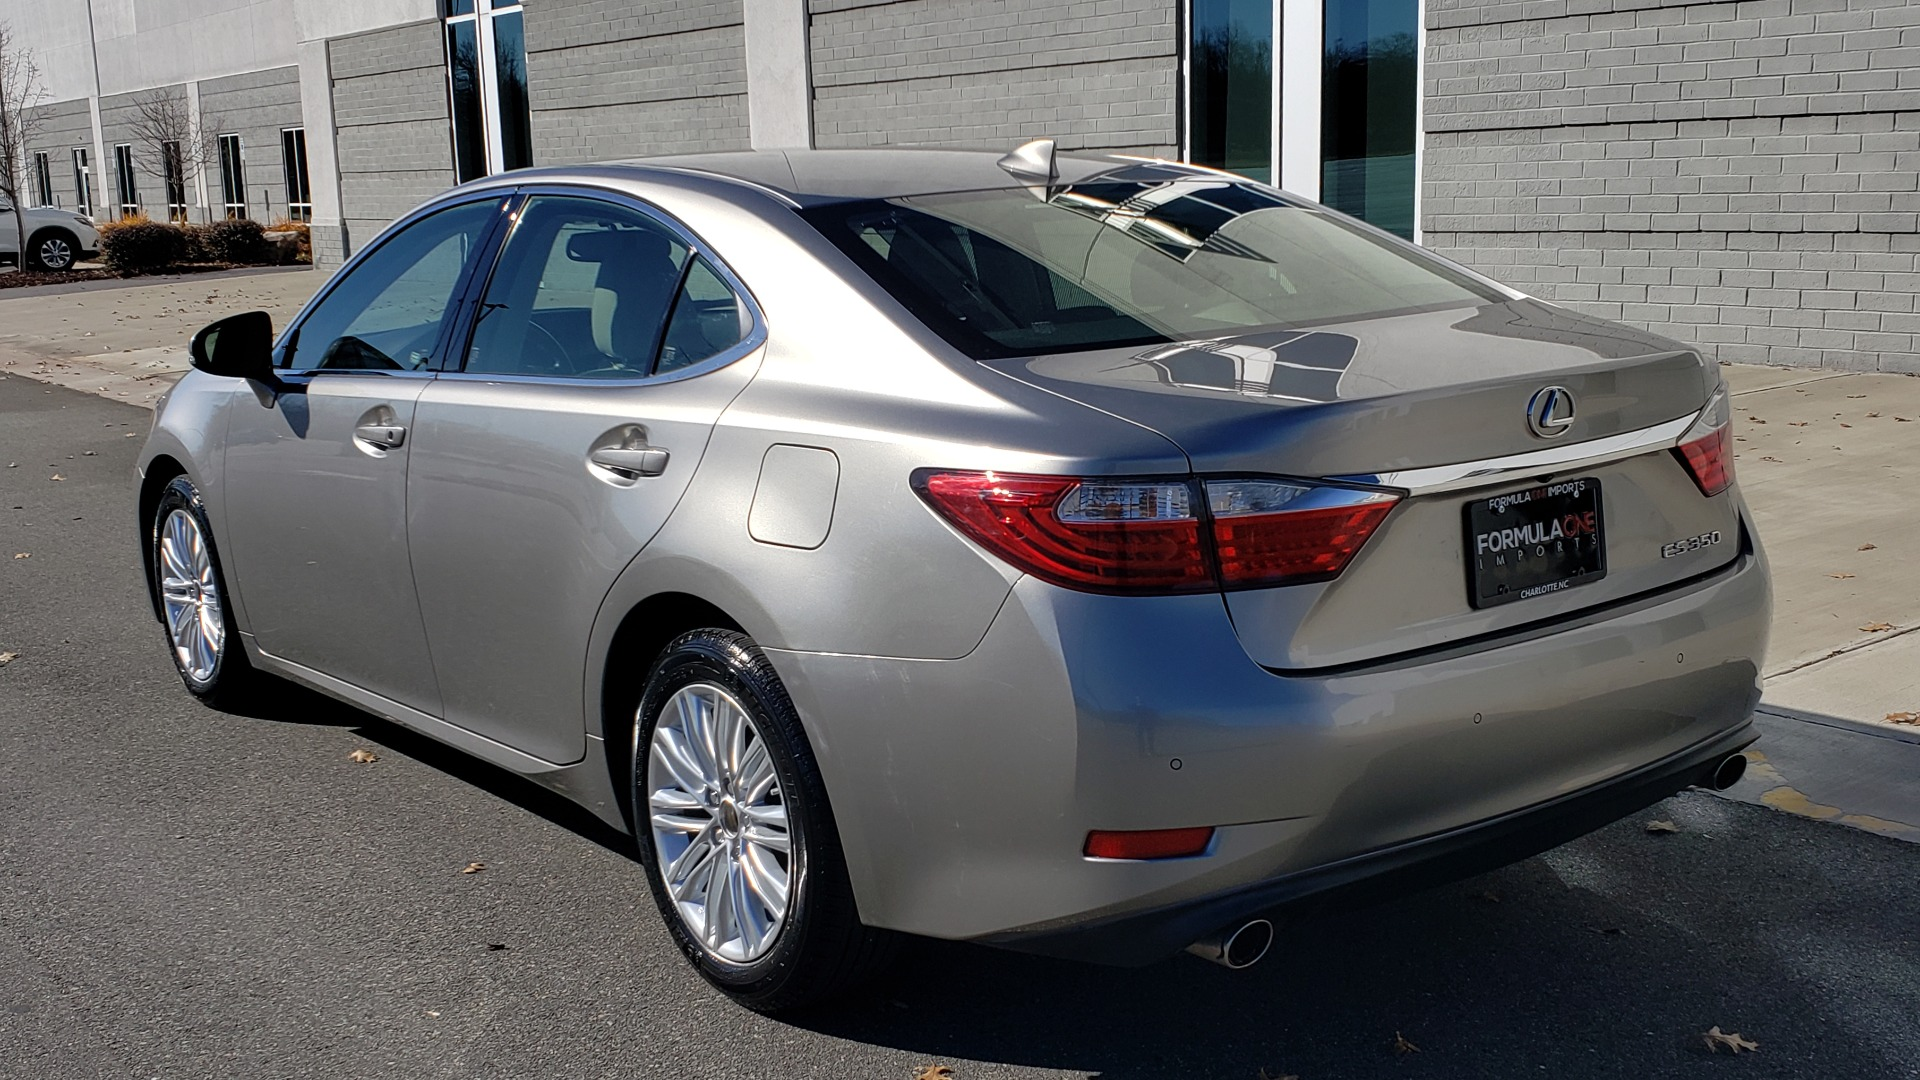 Used 2015 Lexus ES 350 LUXURY PKG / NAV / BSM / LCA / PARK ASSIST / REARVIEW for sale Sold at Formula Imports in Charlotte NC 28227 3